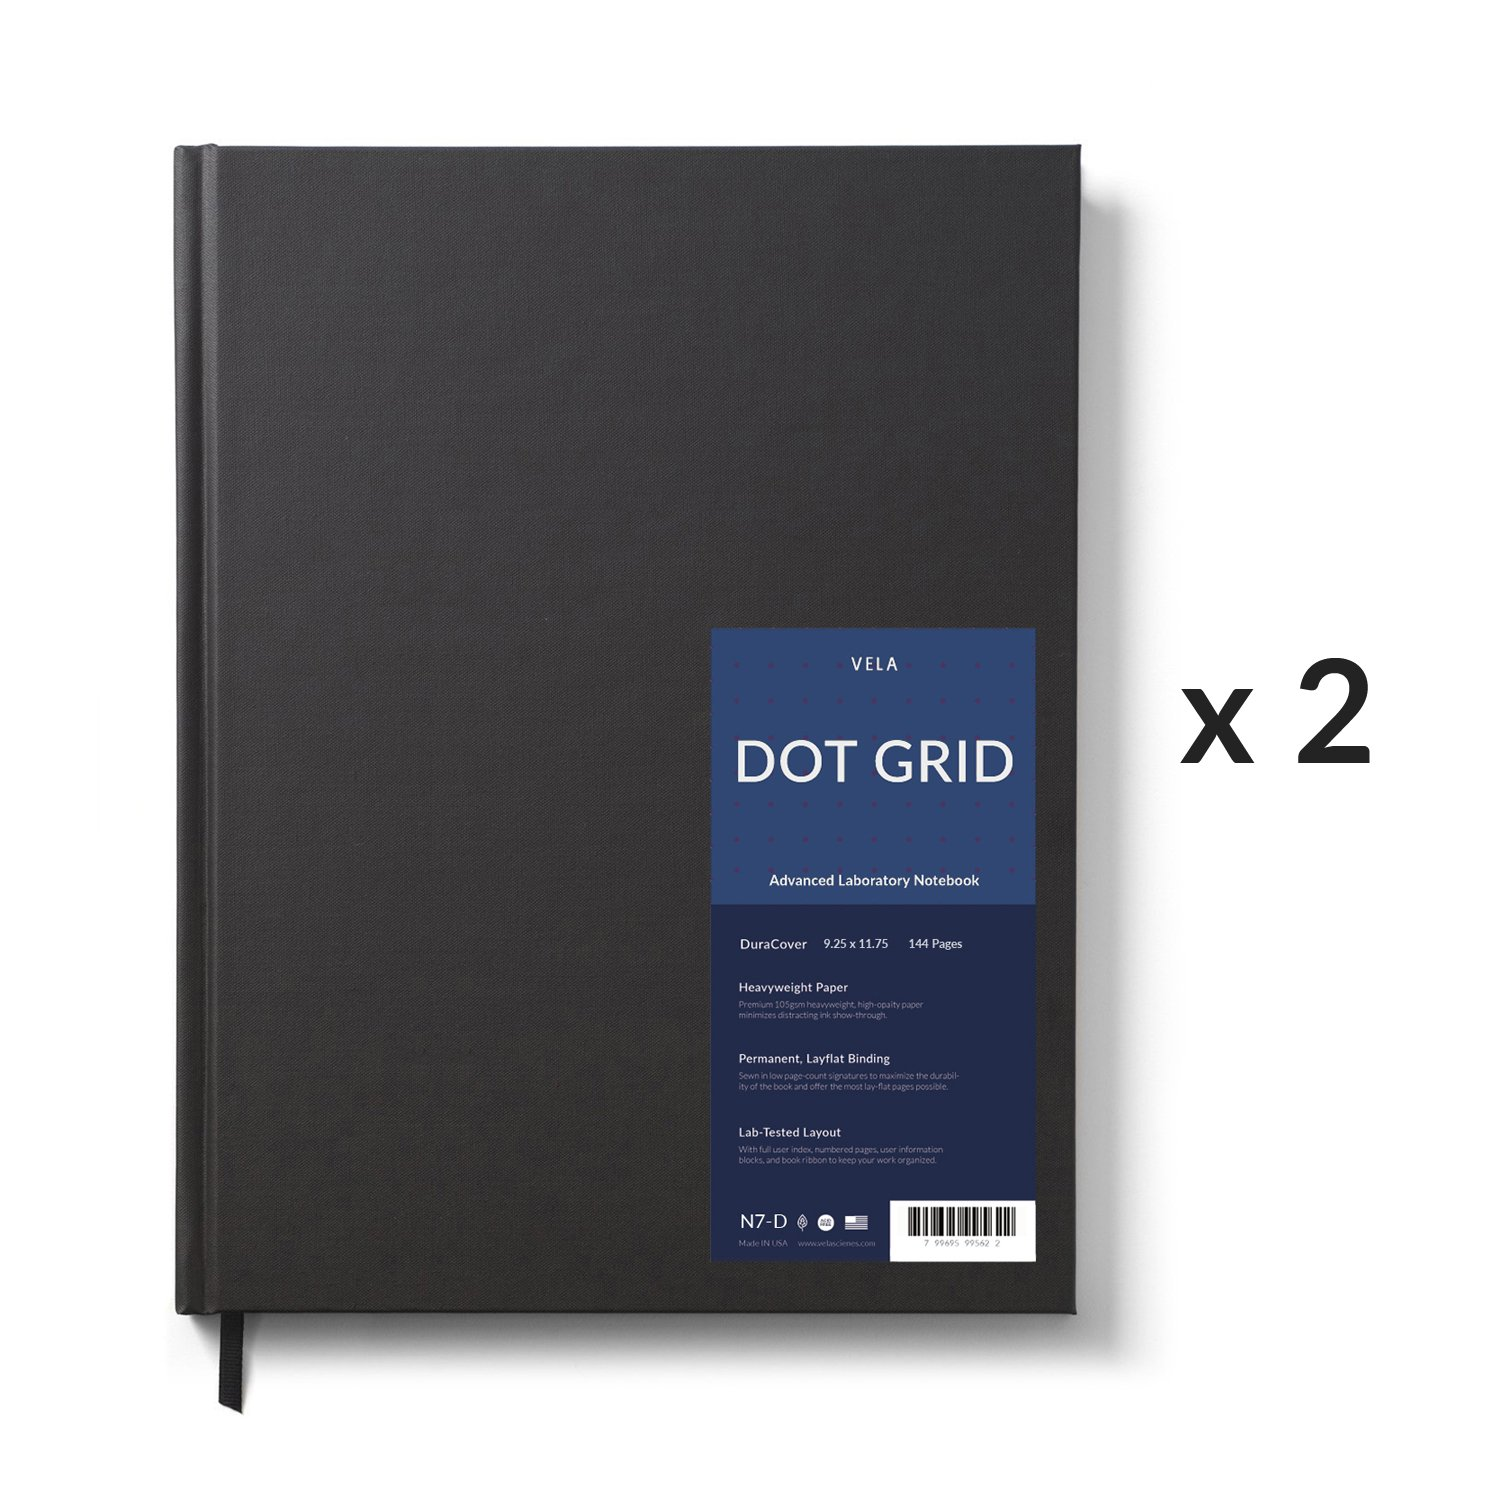 Vela Sciences Advanced DuraCover Lab Notebook, 9.25 x 11.75 inches, 144 Pages (Dot Grid, 2-Pack)